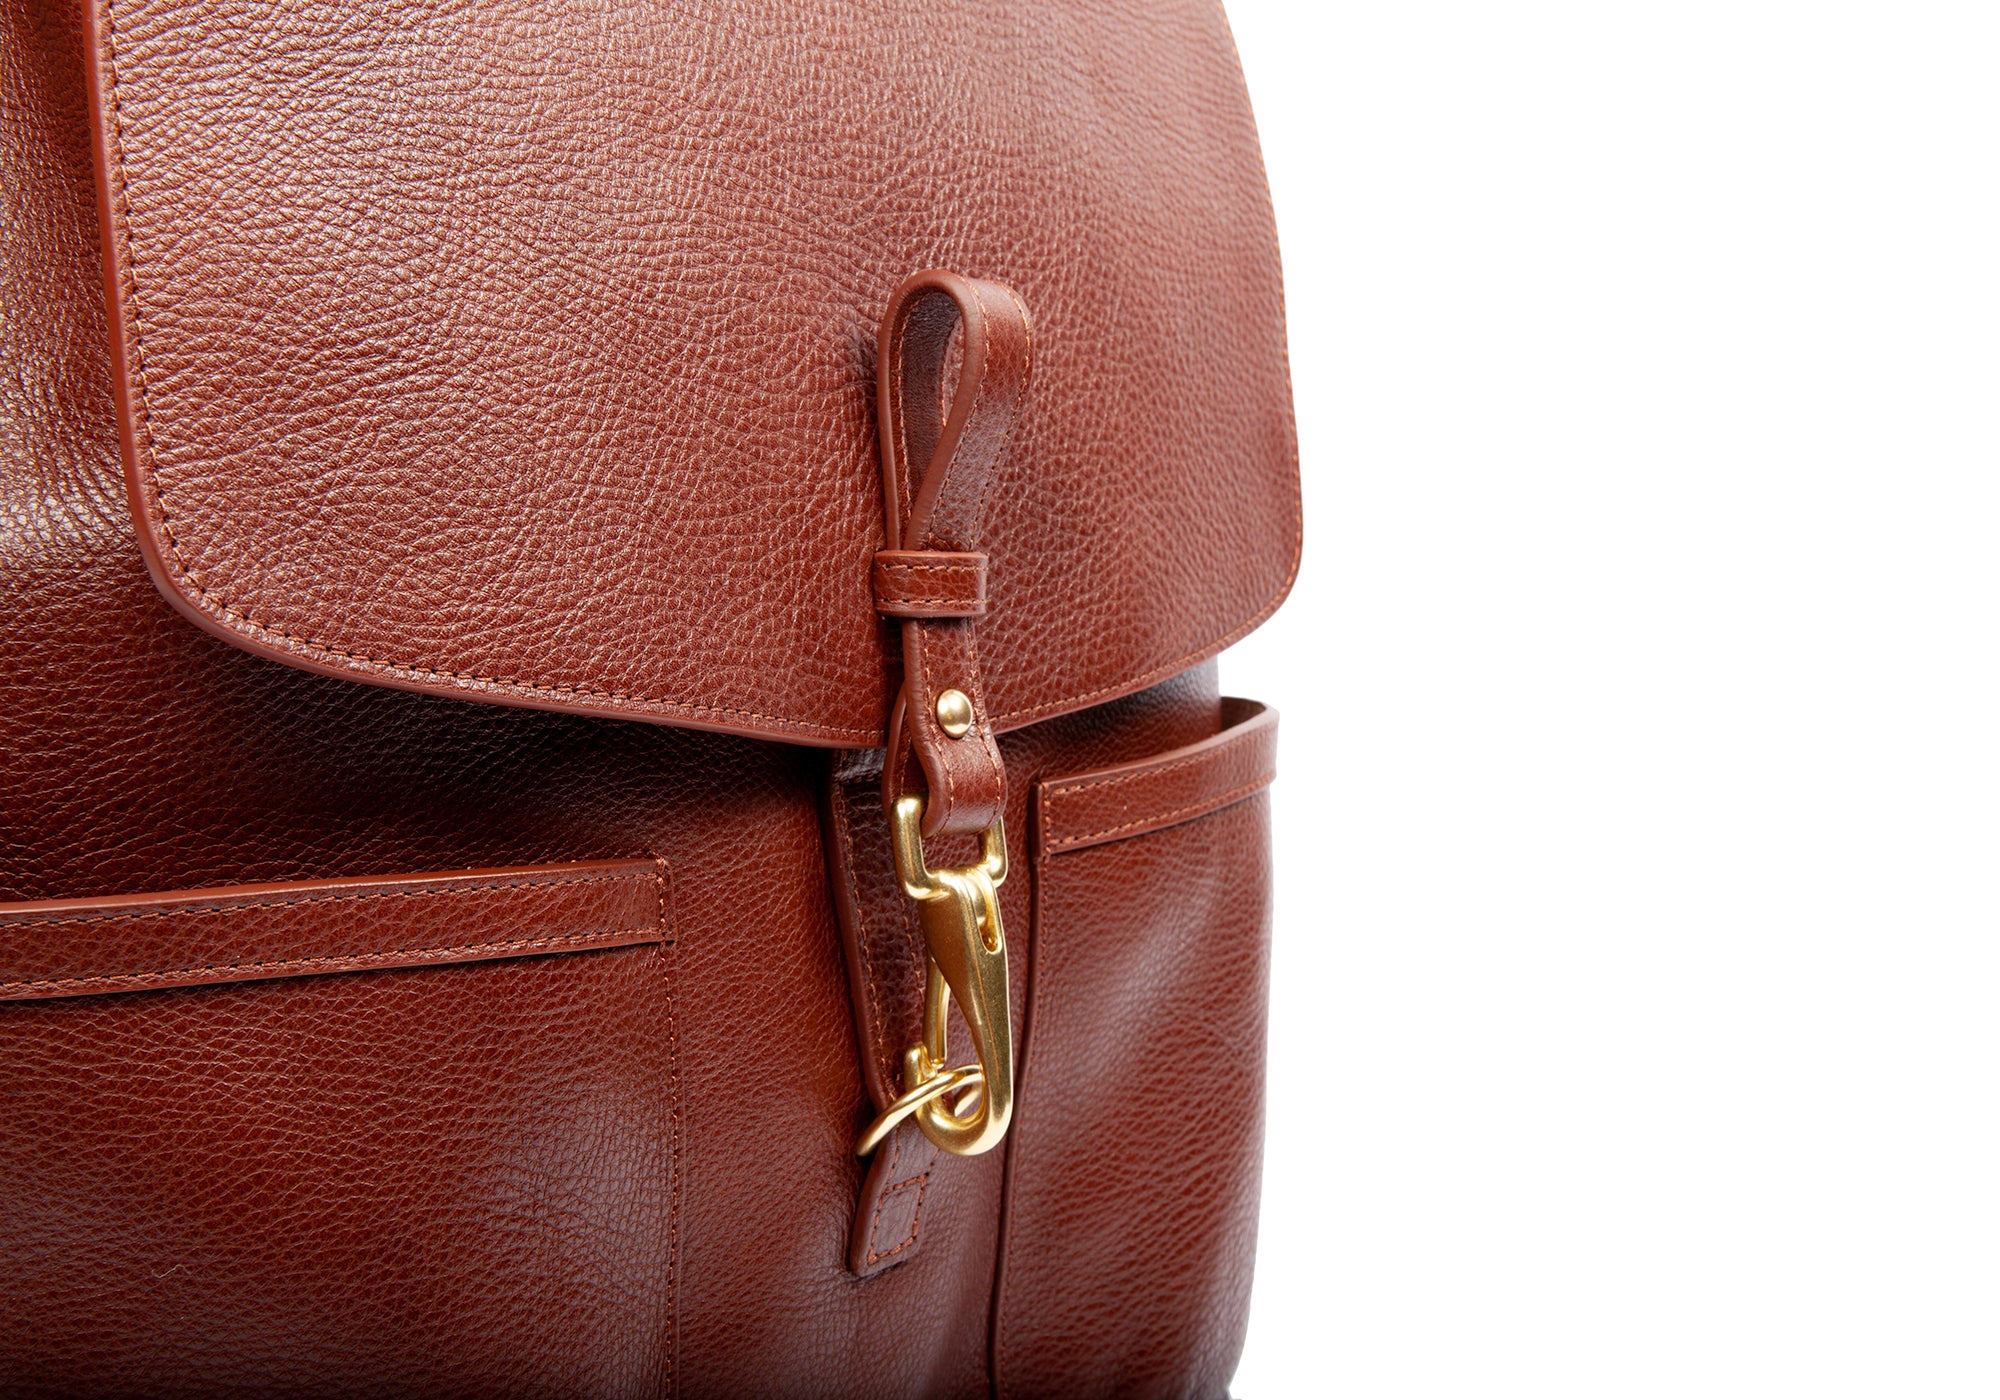 Leather Snap View of Leather Knapsack Chestnut